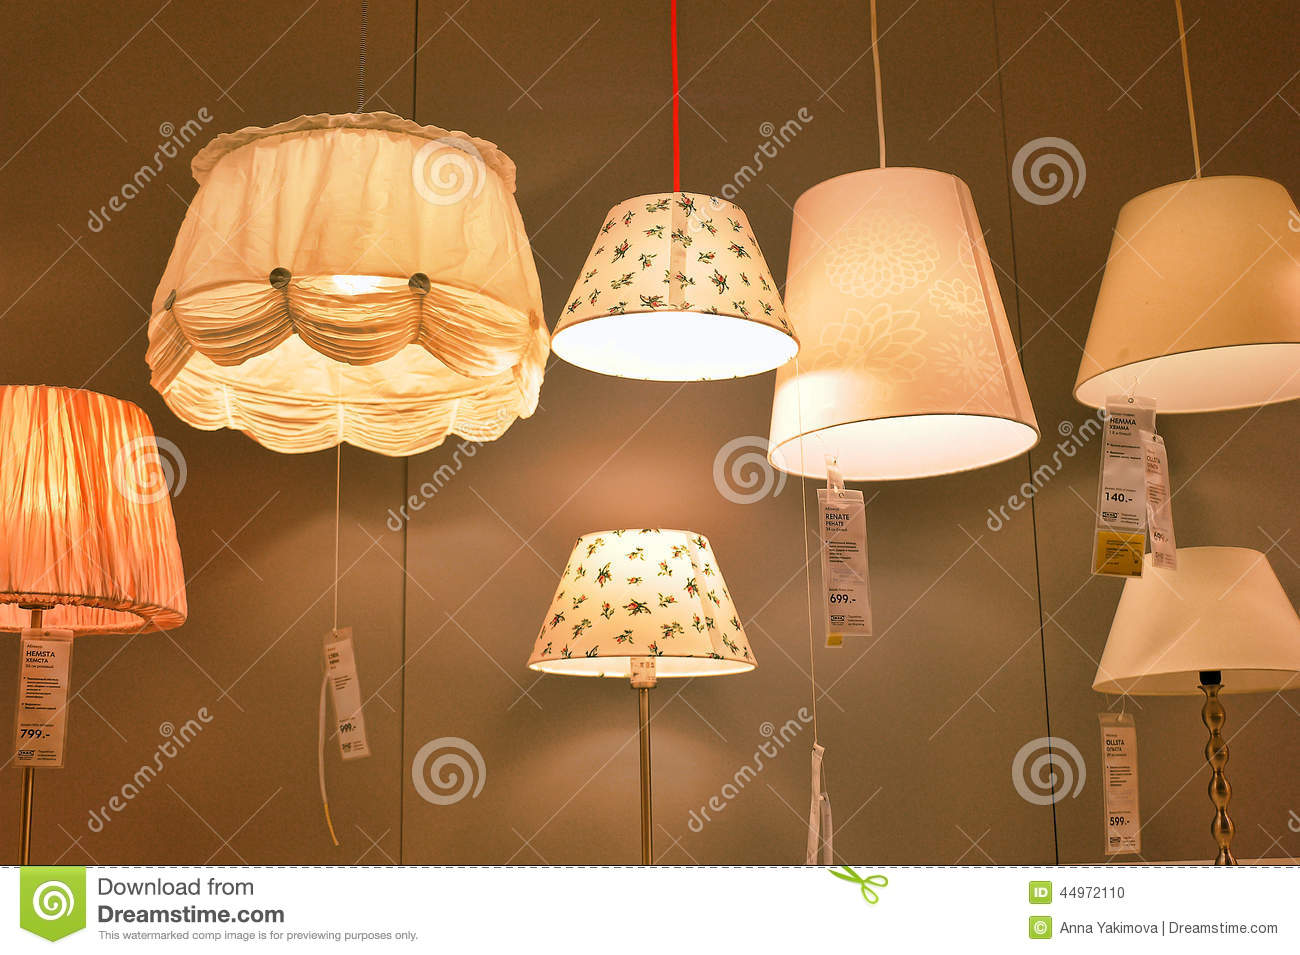 Lamps And Lighting >> Lamps And Lighting Fixtures In The Store Editorial Image